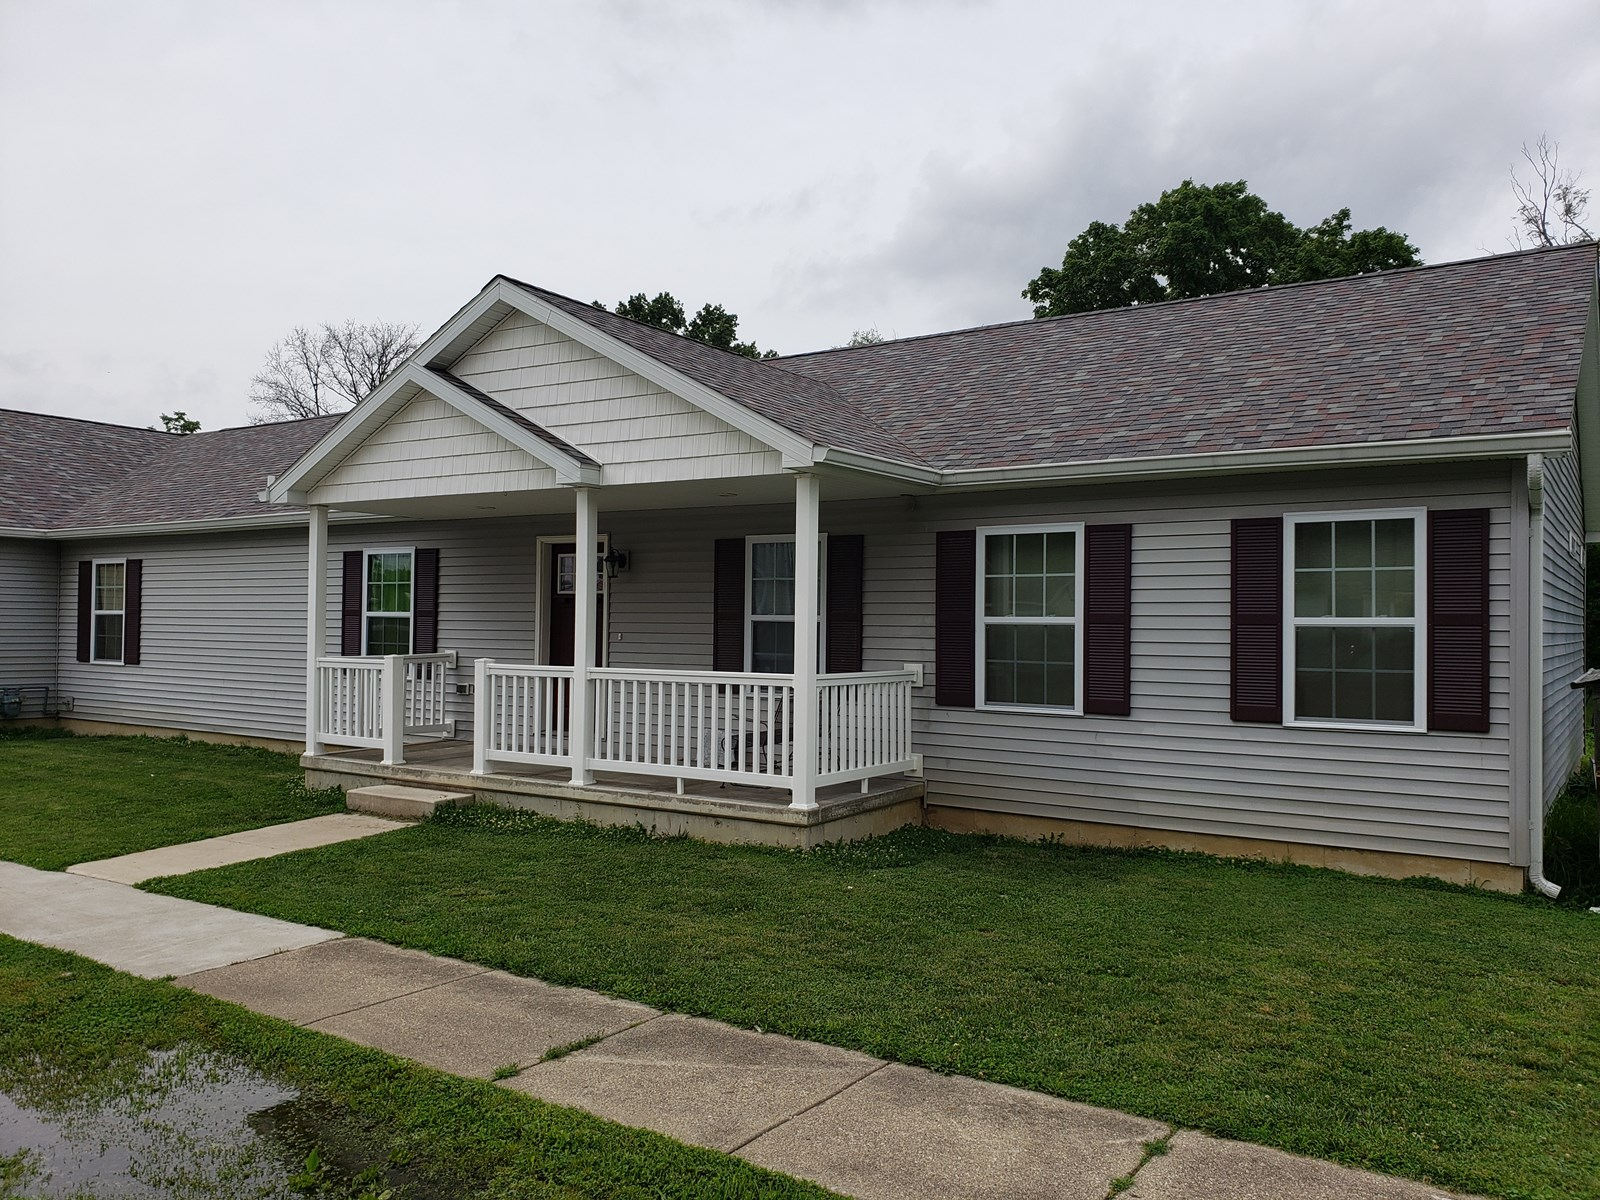 Spacious 3 Bedroom, 2 Bath with 3 Car Garage, & Basement